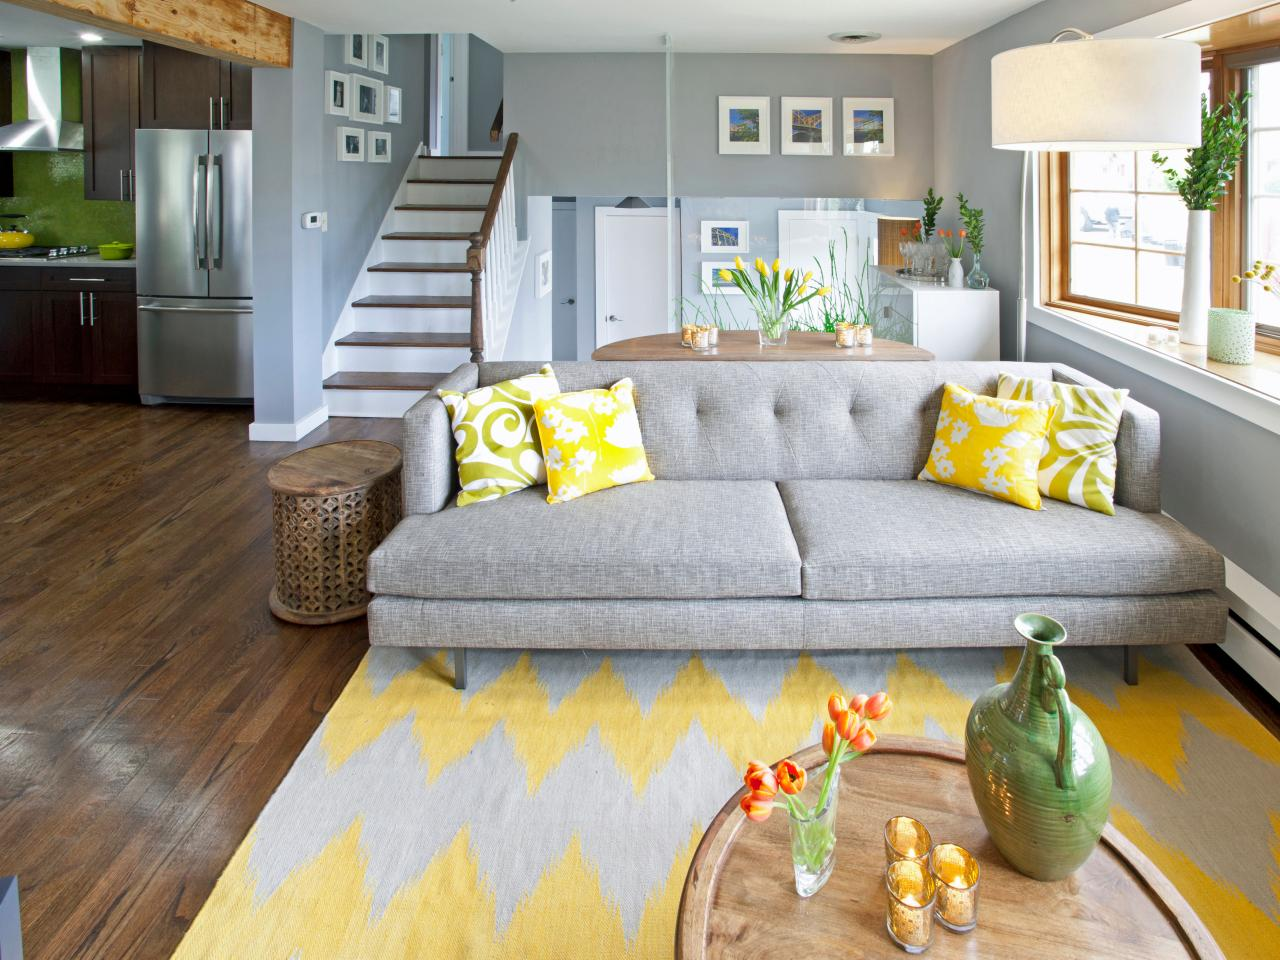 Dazzling yellow throw pillows with best seller ideas